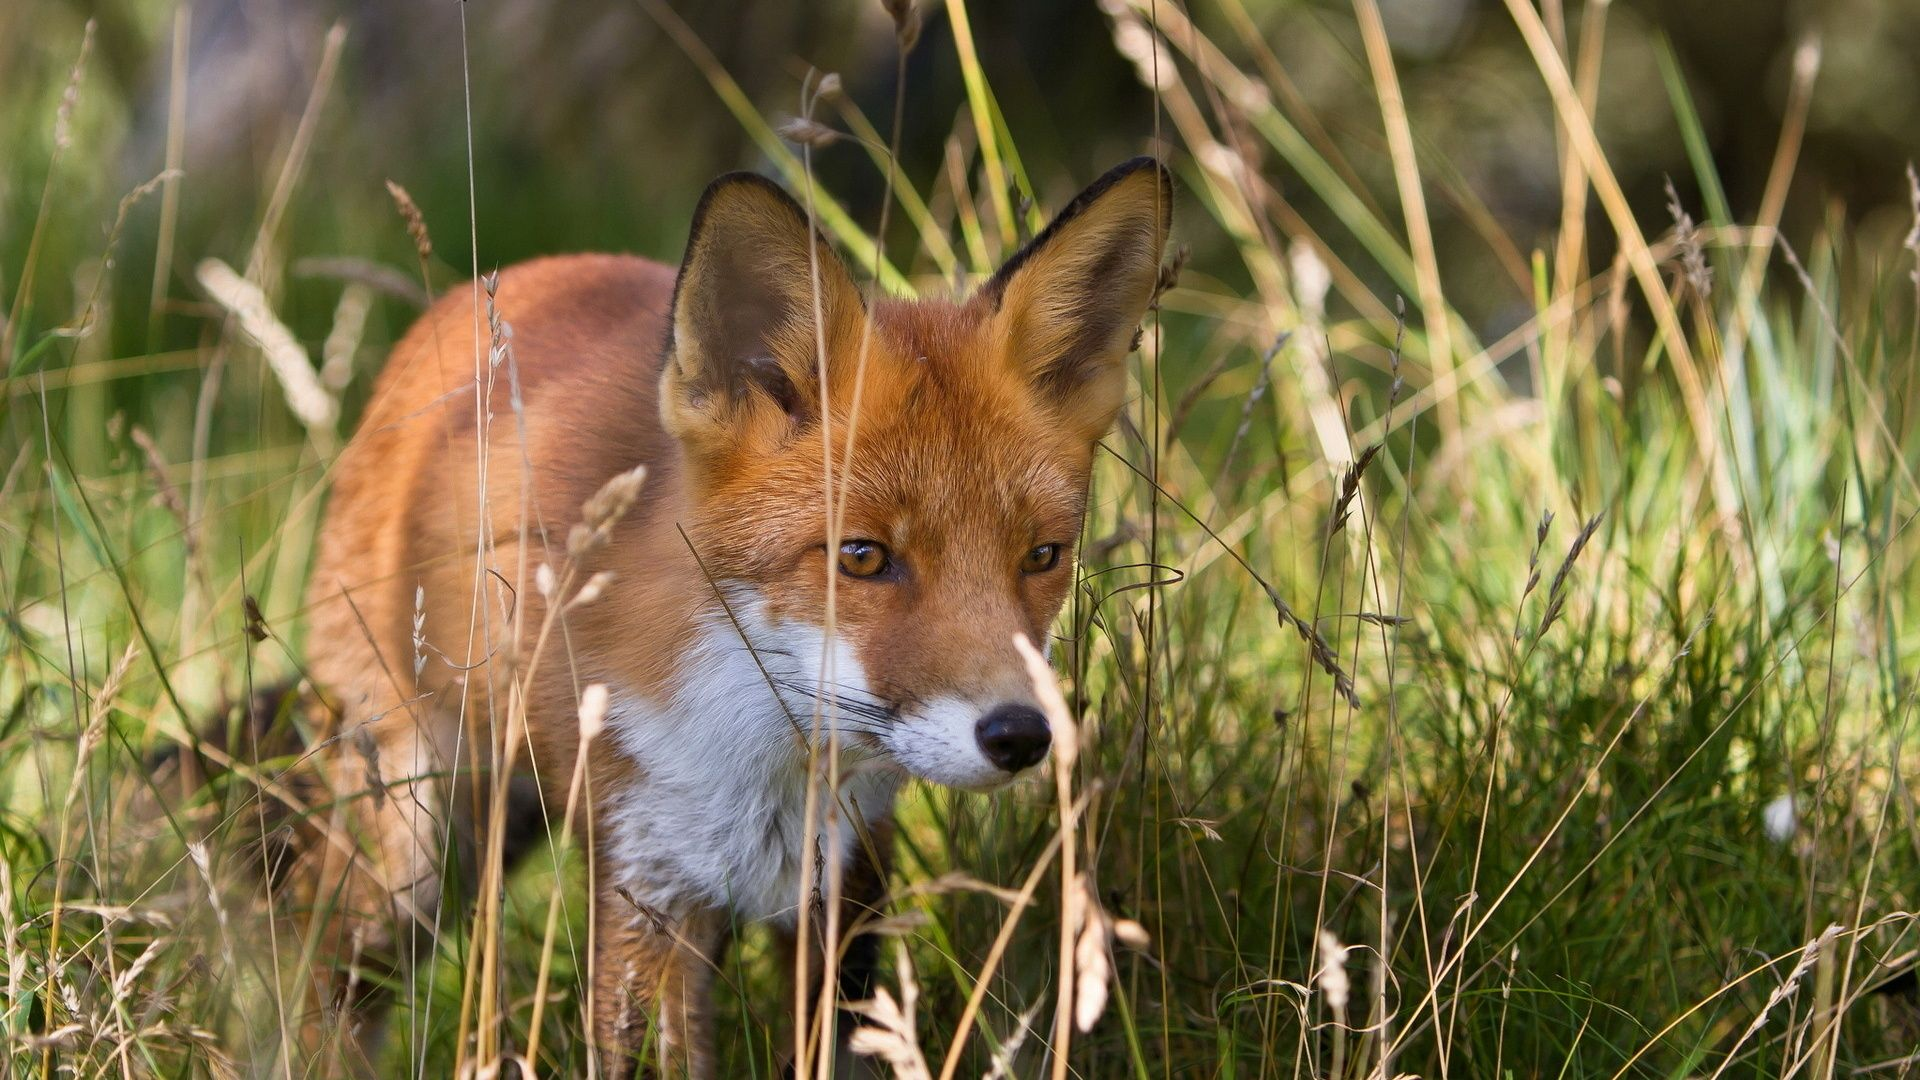 Fox Photo Of The Animal In The Summer